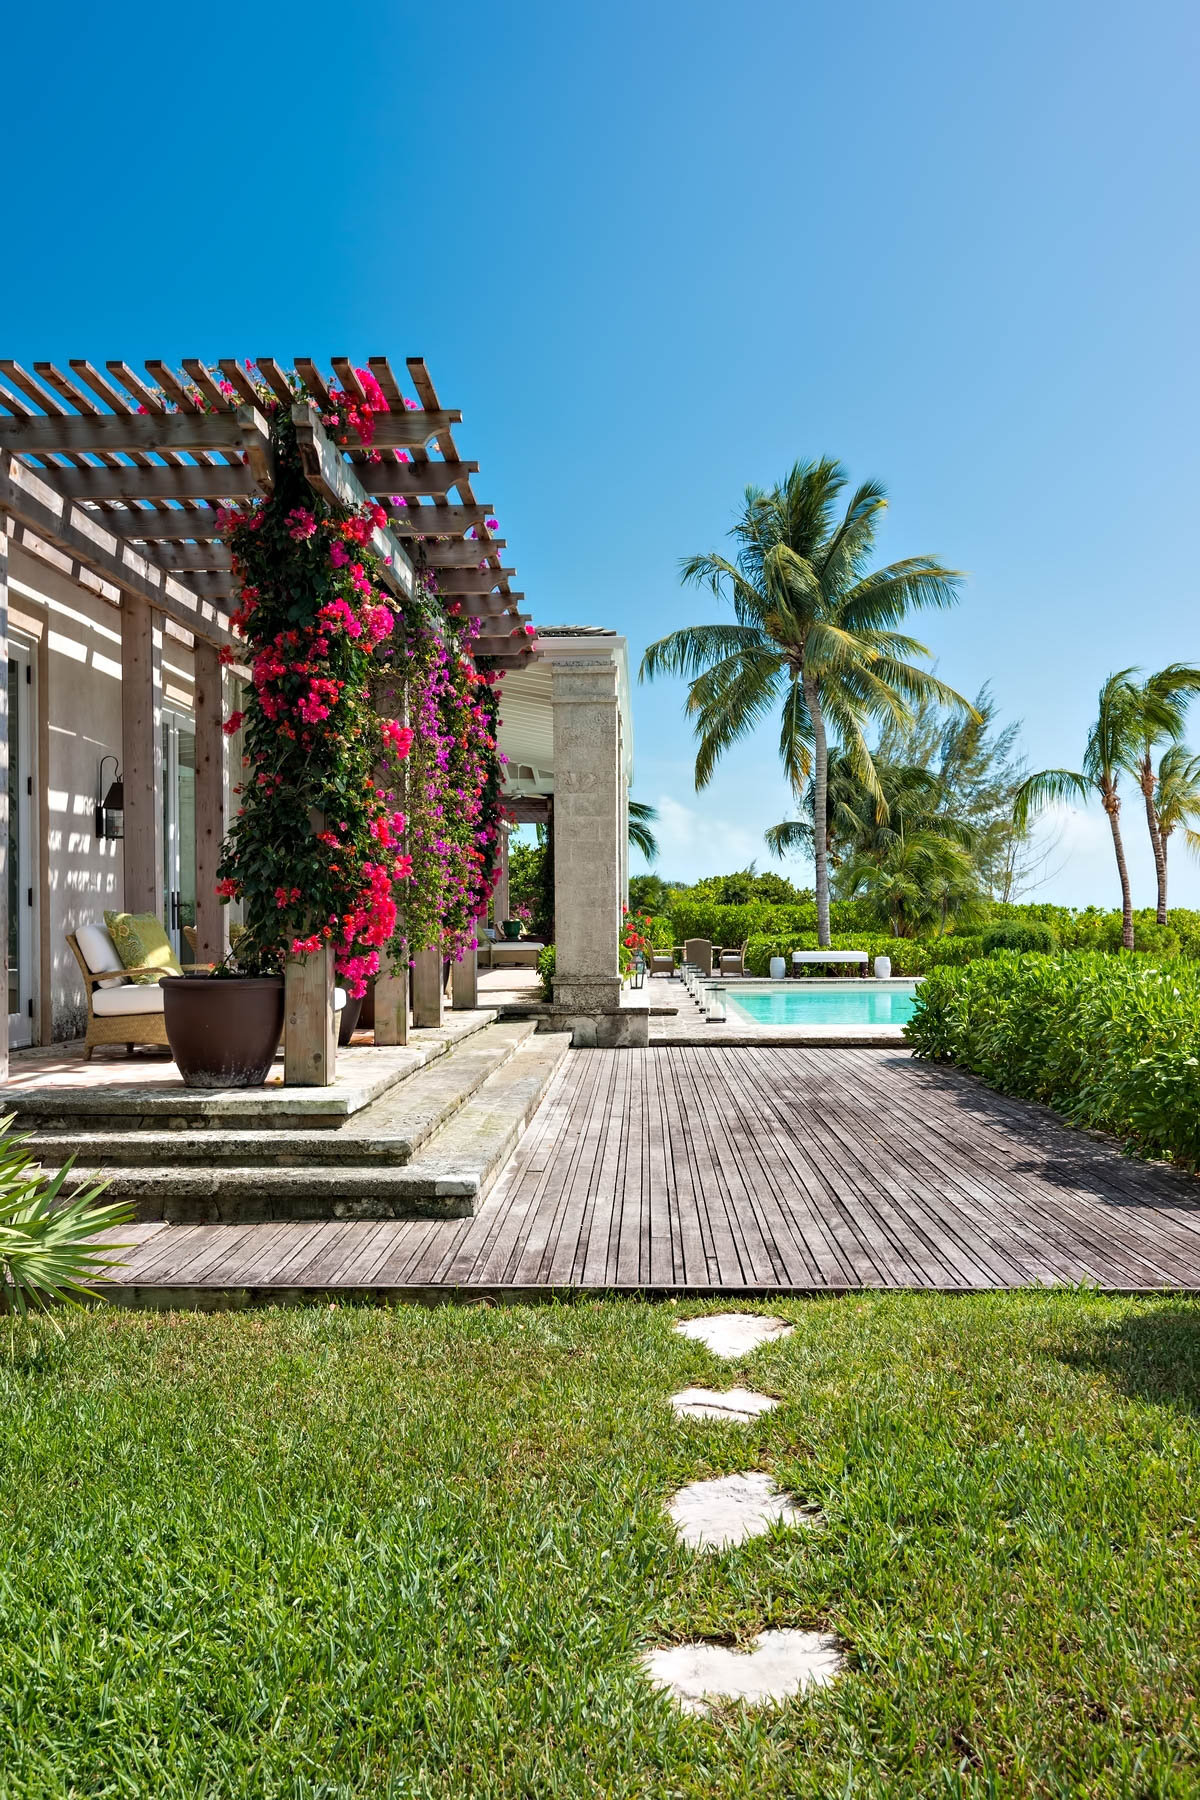 Oliver's Cove Luxury Estate – Parrot Cay, Turks and Caicos Islands